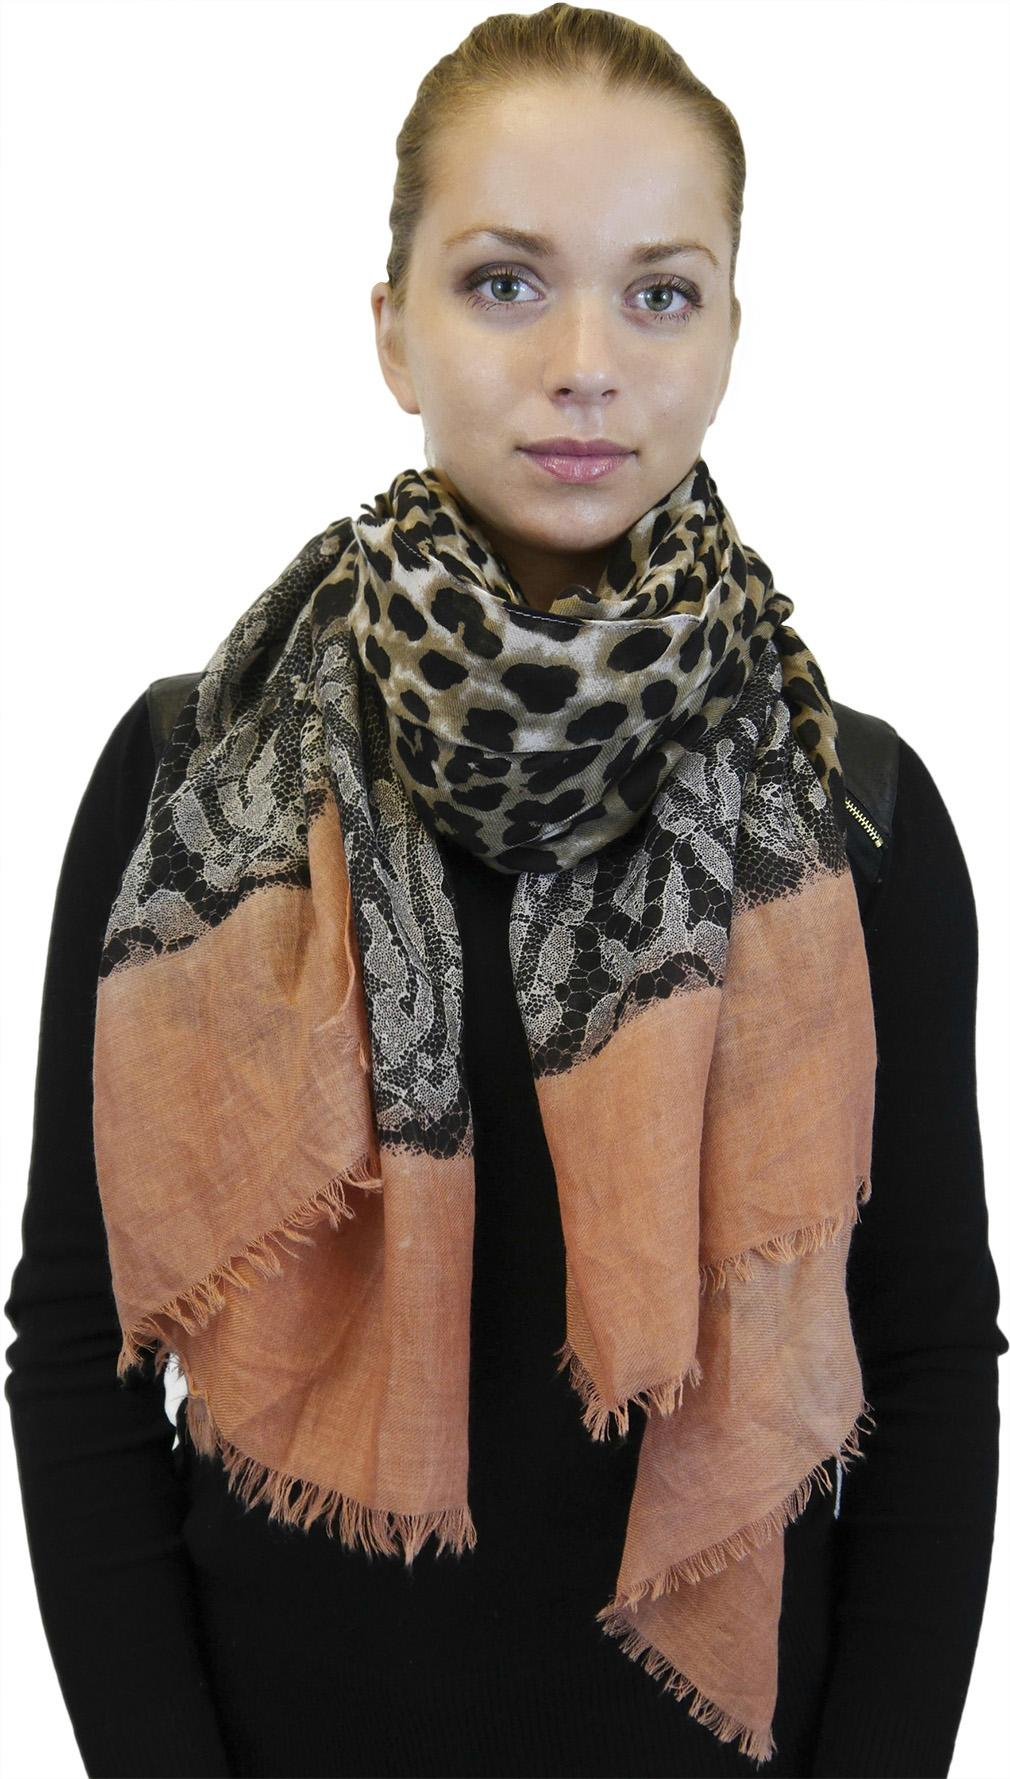 Lightweight Large Fringe Scarf, Fashion Shawl Wrap for Women, Leopard and Lace Print